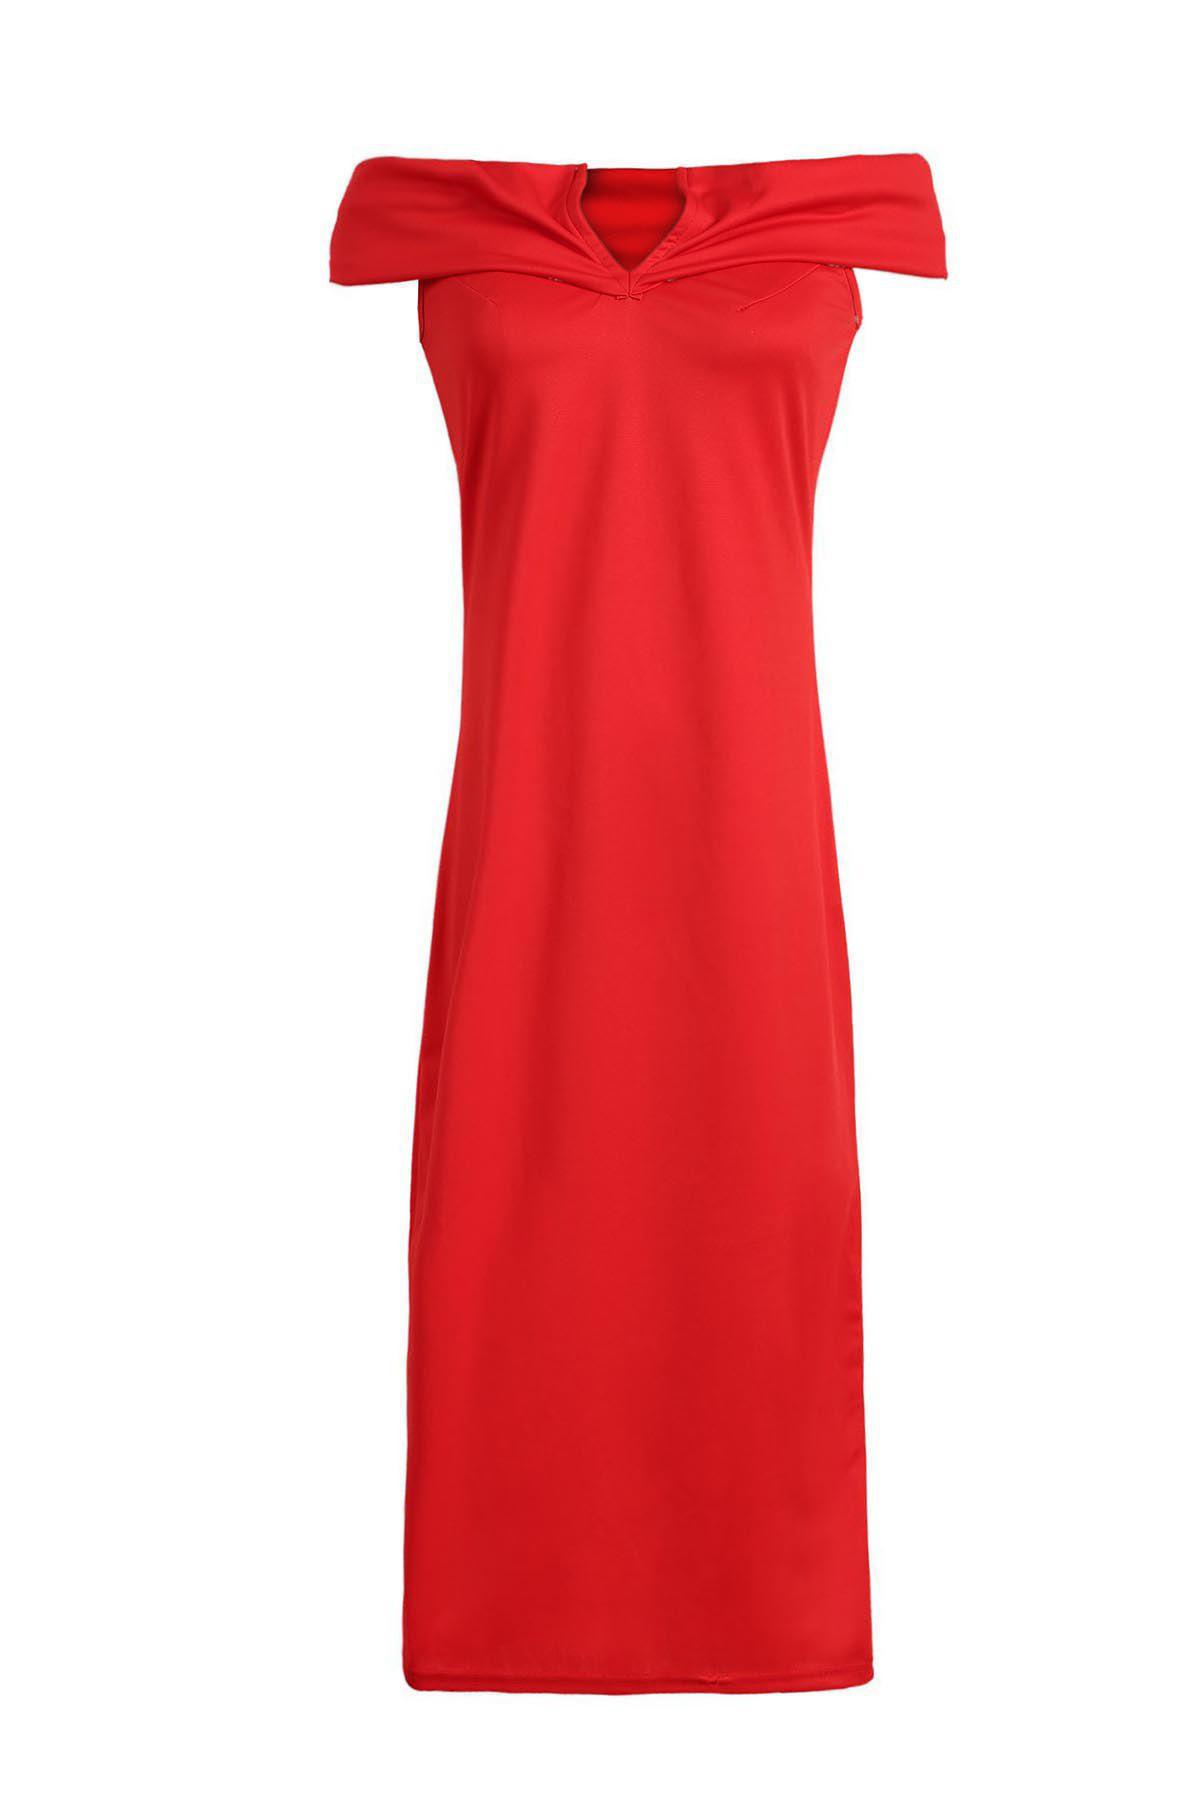 OL Style Off The Shoulder Red Dress For Women ol